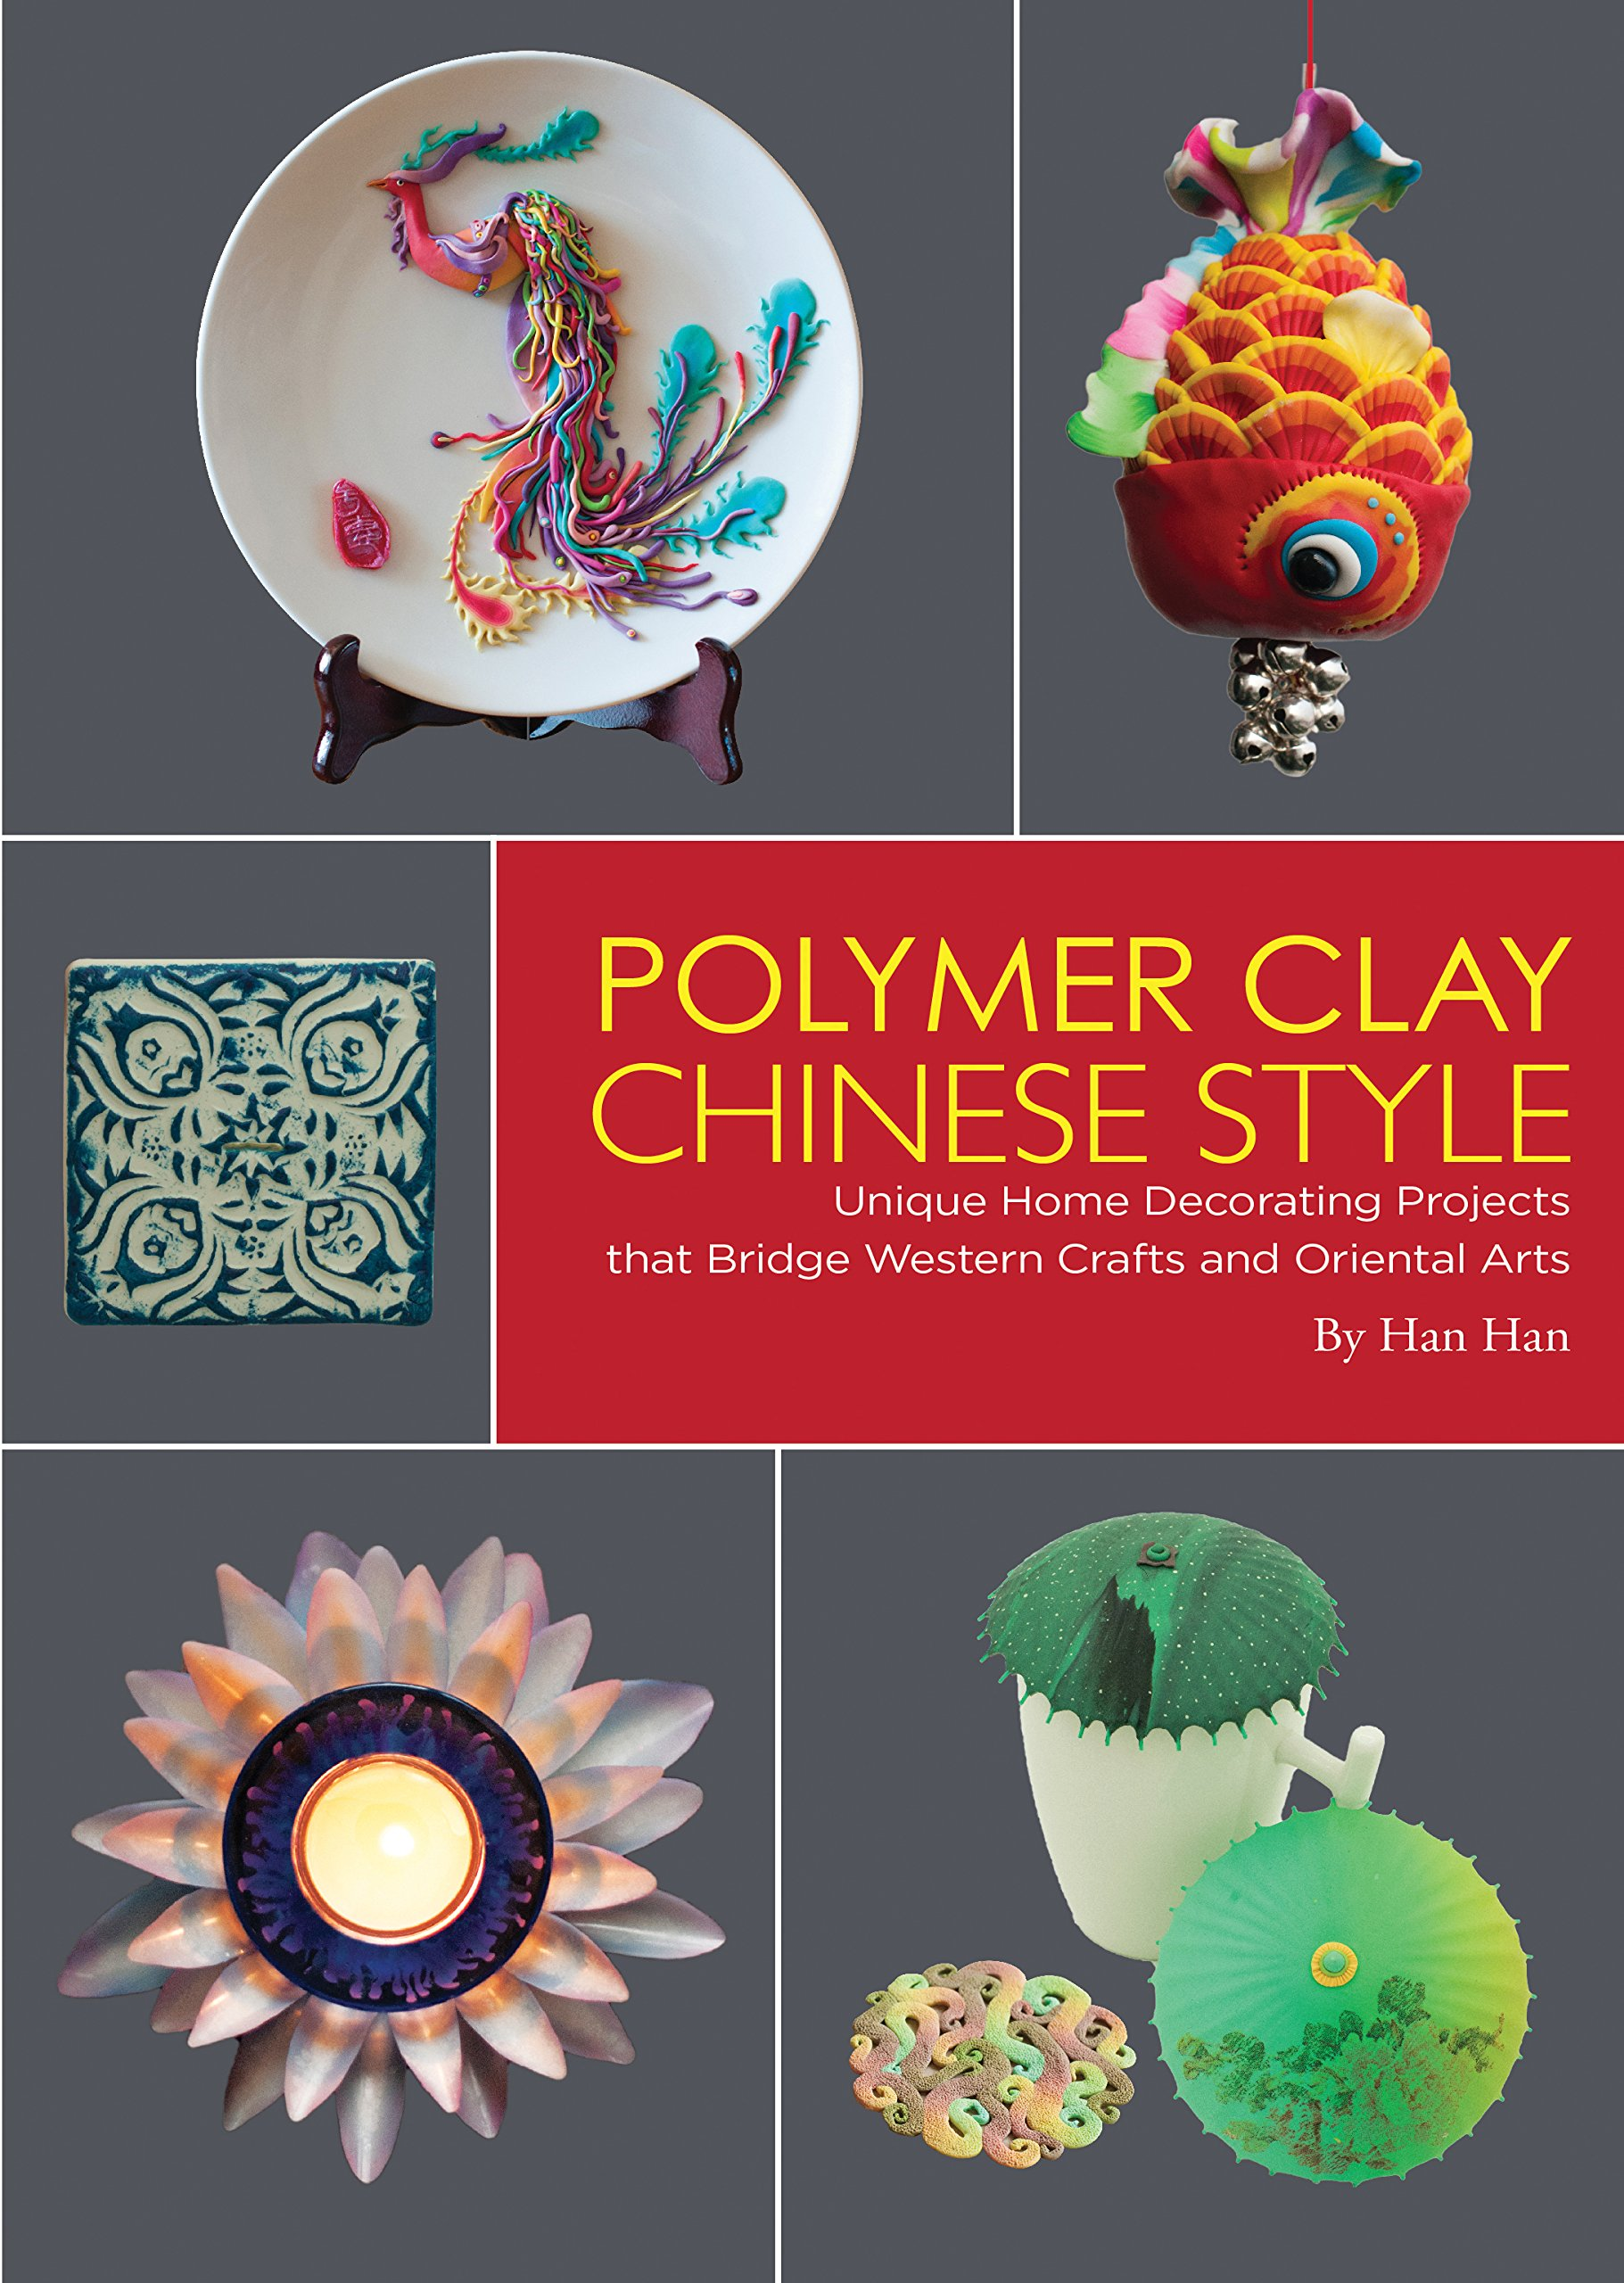 Western arts and crafts - Polymer Clay Chinese Style Unique Home Decorating Projects That Bridge Western Crafts And Oriental Arts Han Han Kitty Lau 9781602200227 Amazon Com